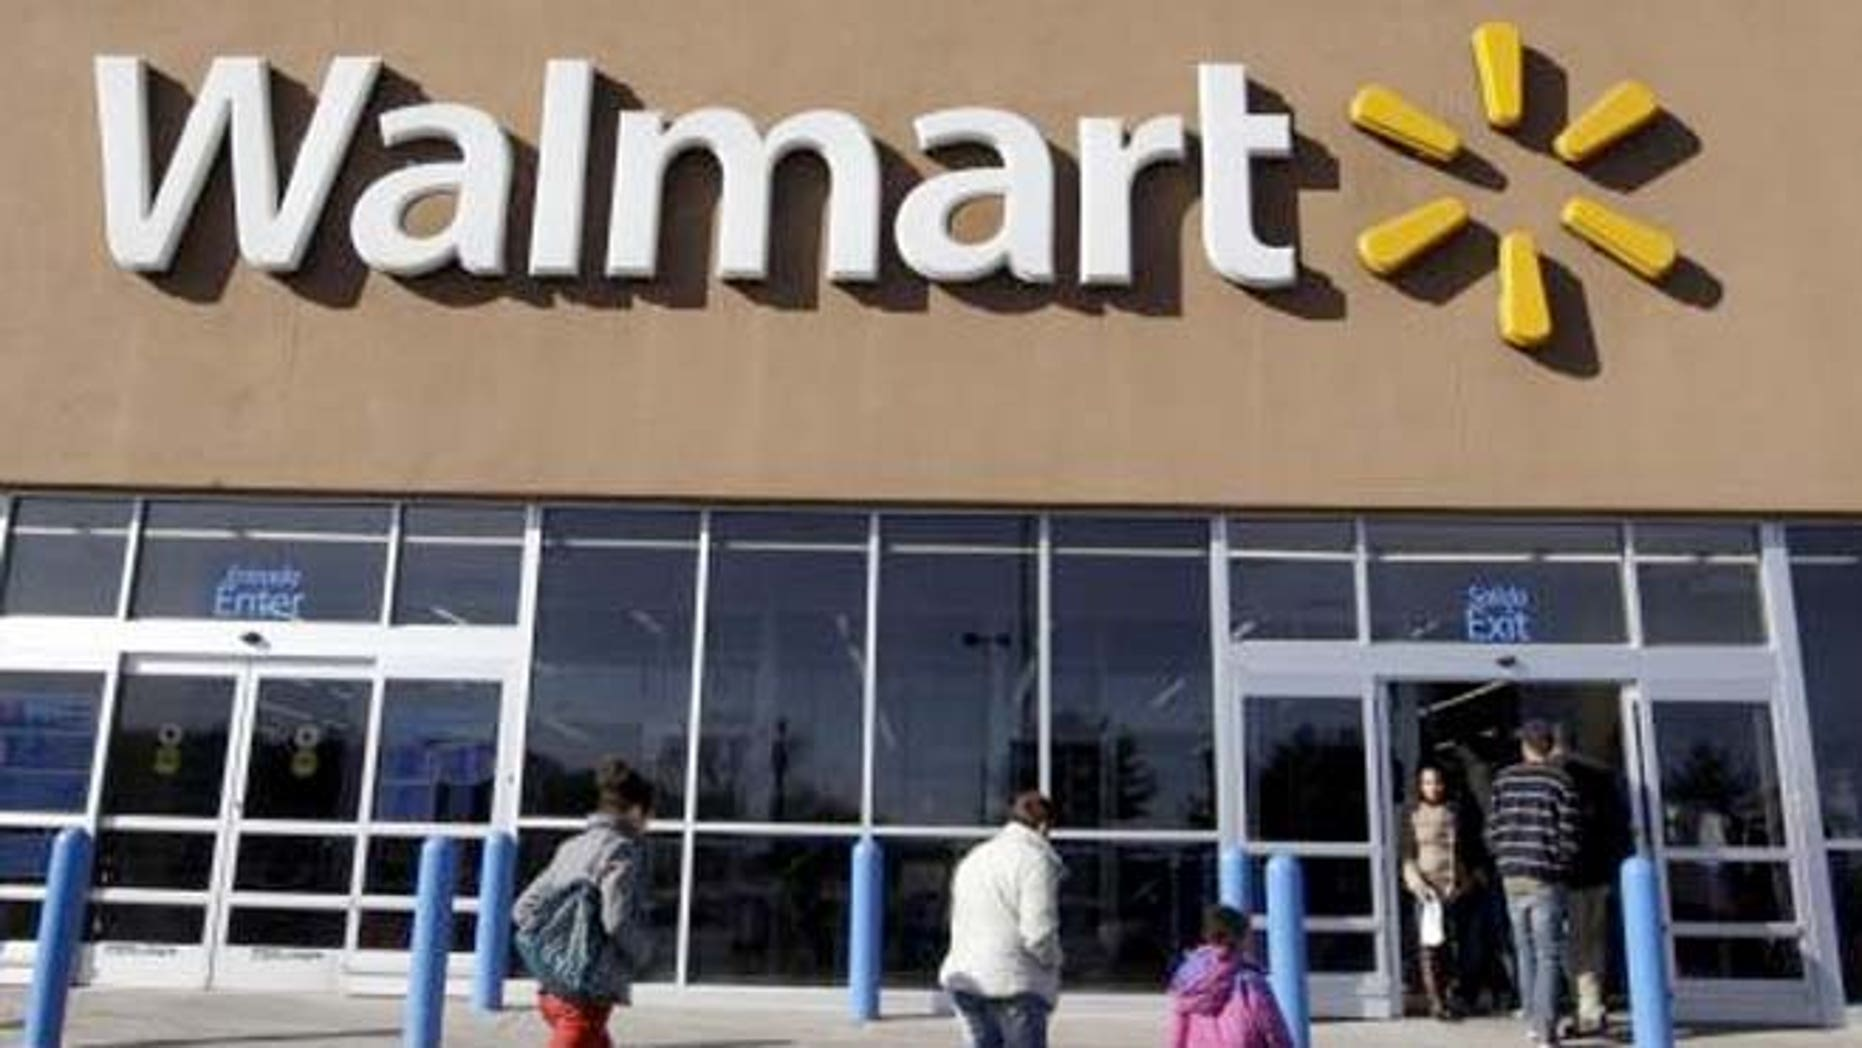 Walmart refuses to sell alcohol to 57-year-old man because his teen daughter he was shopping with had no ID.